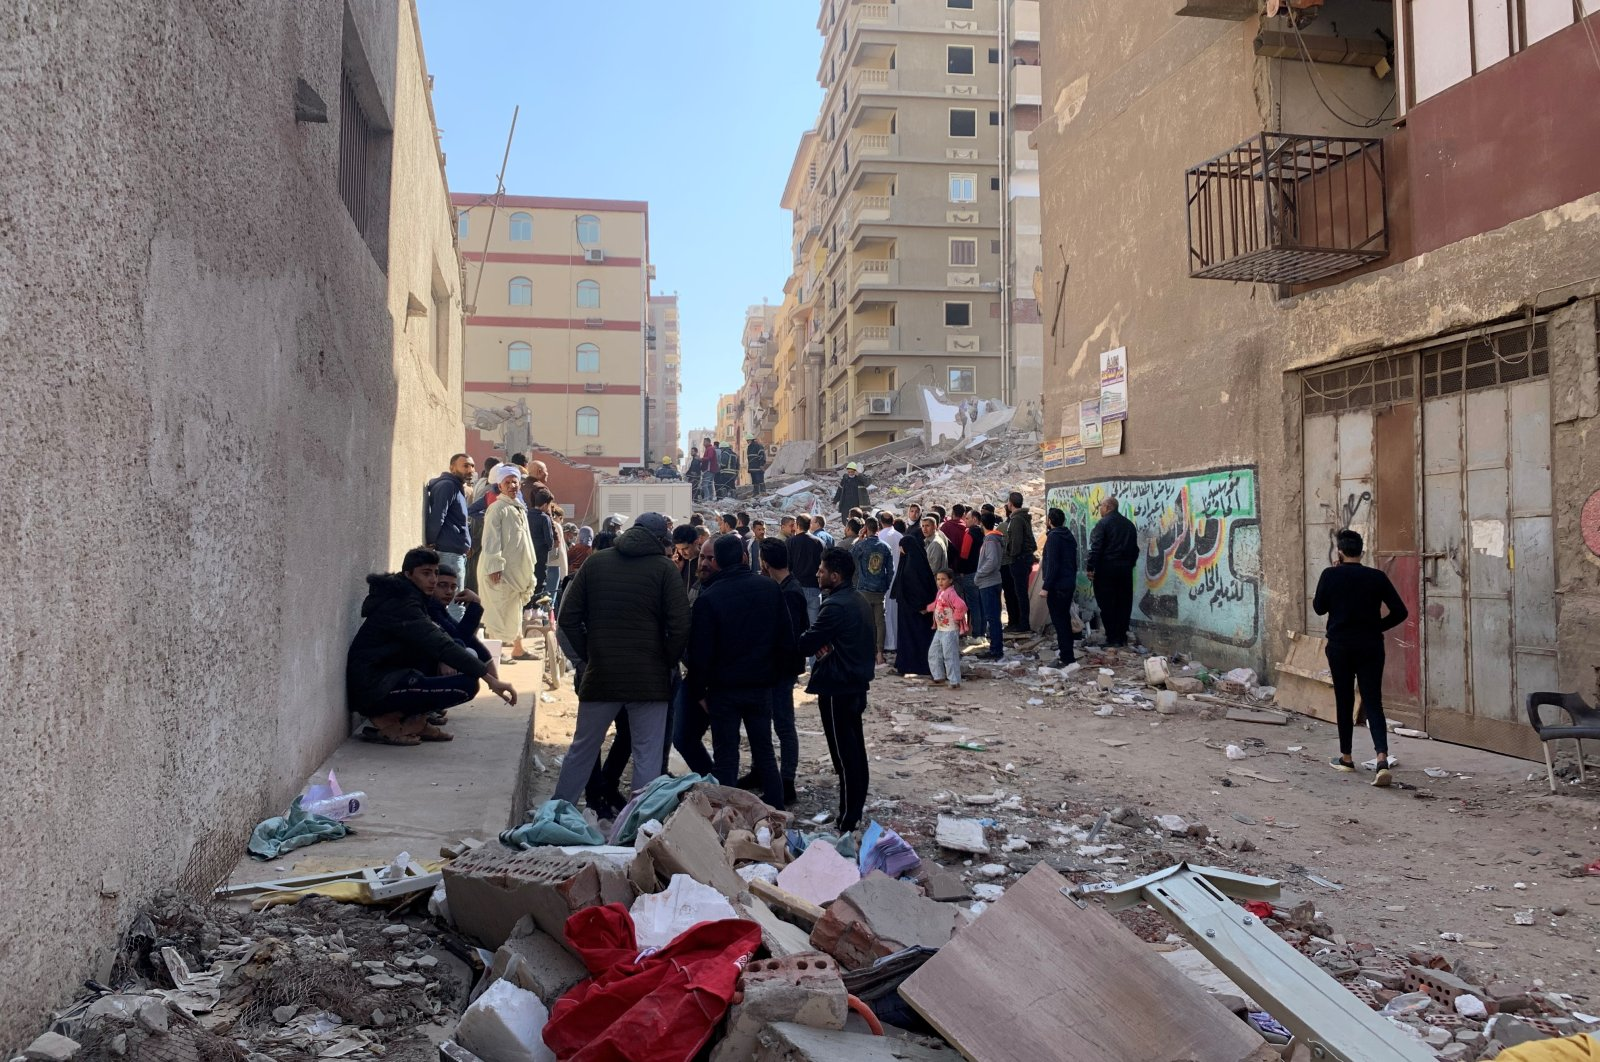 People inspect the area where a building collapsed in Cairo, Egypt, March 27, 2021. (Reuters Photo)